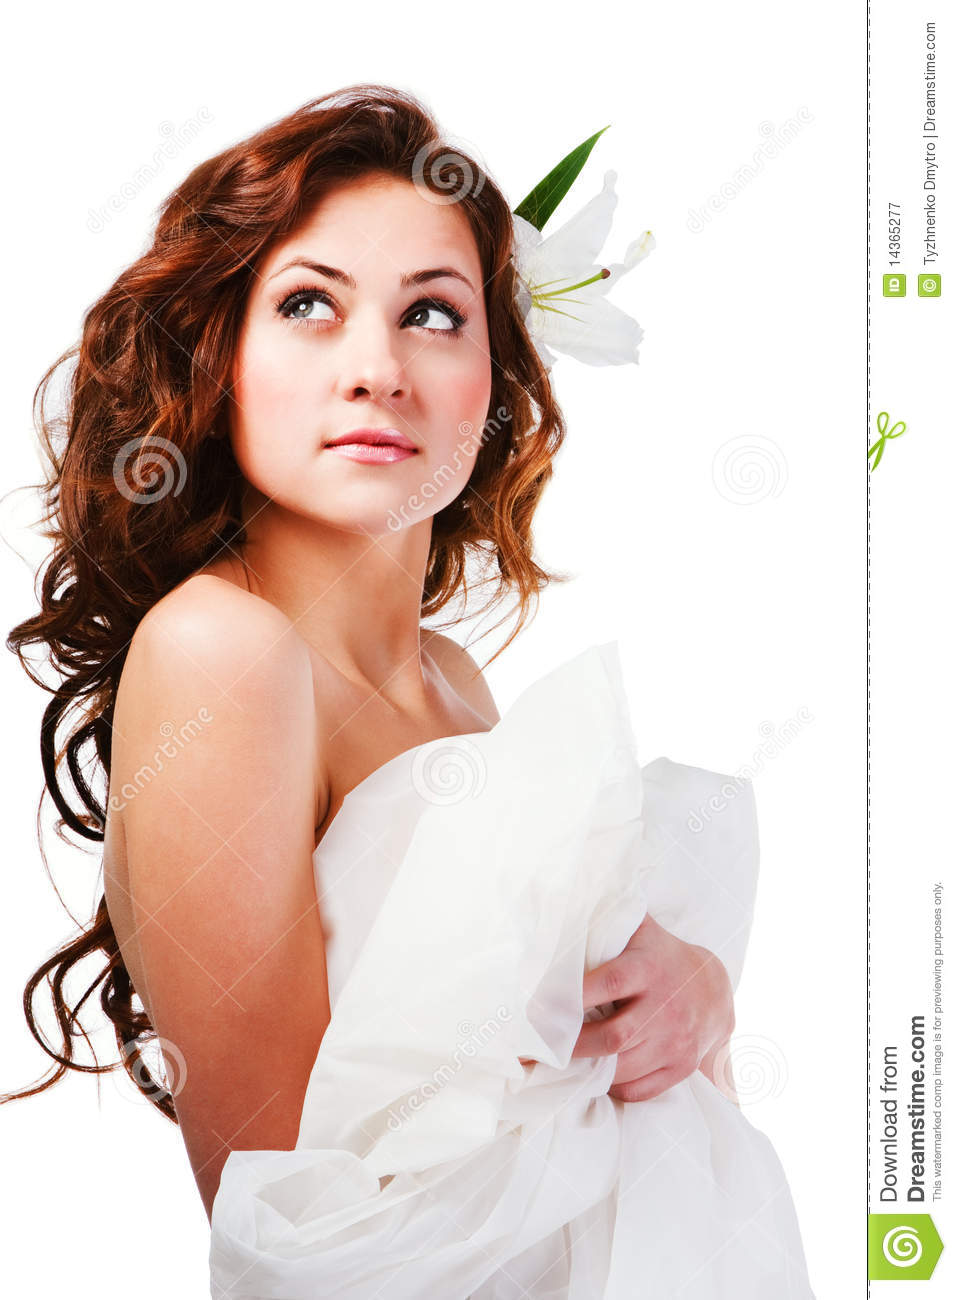 Beautiful charming young girl in white royalty free stock photography image 14365277 - Charming teenage girls image ...